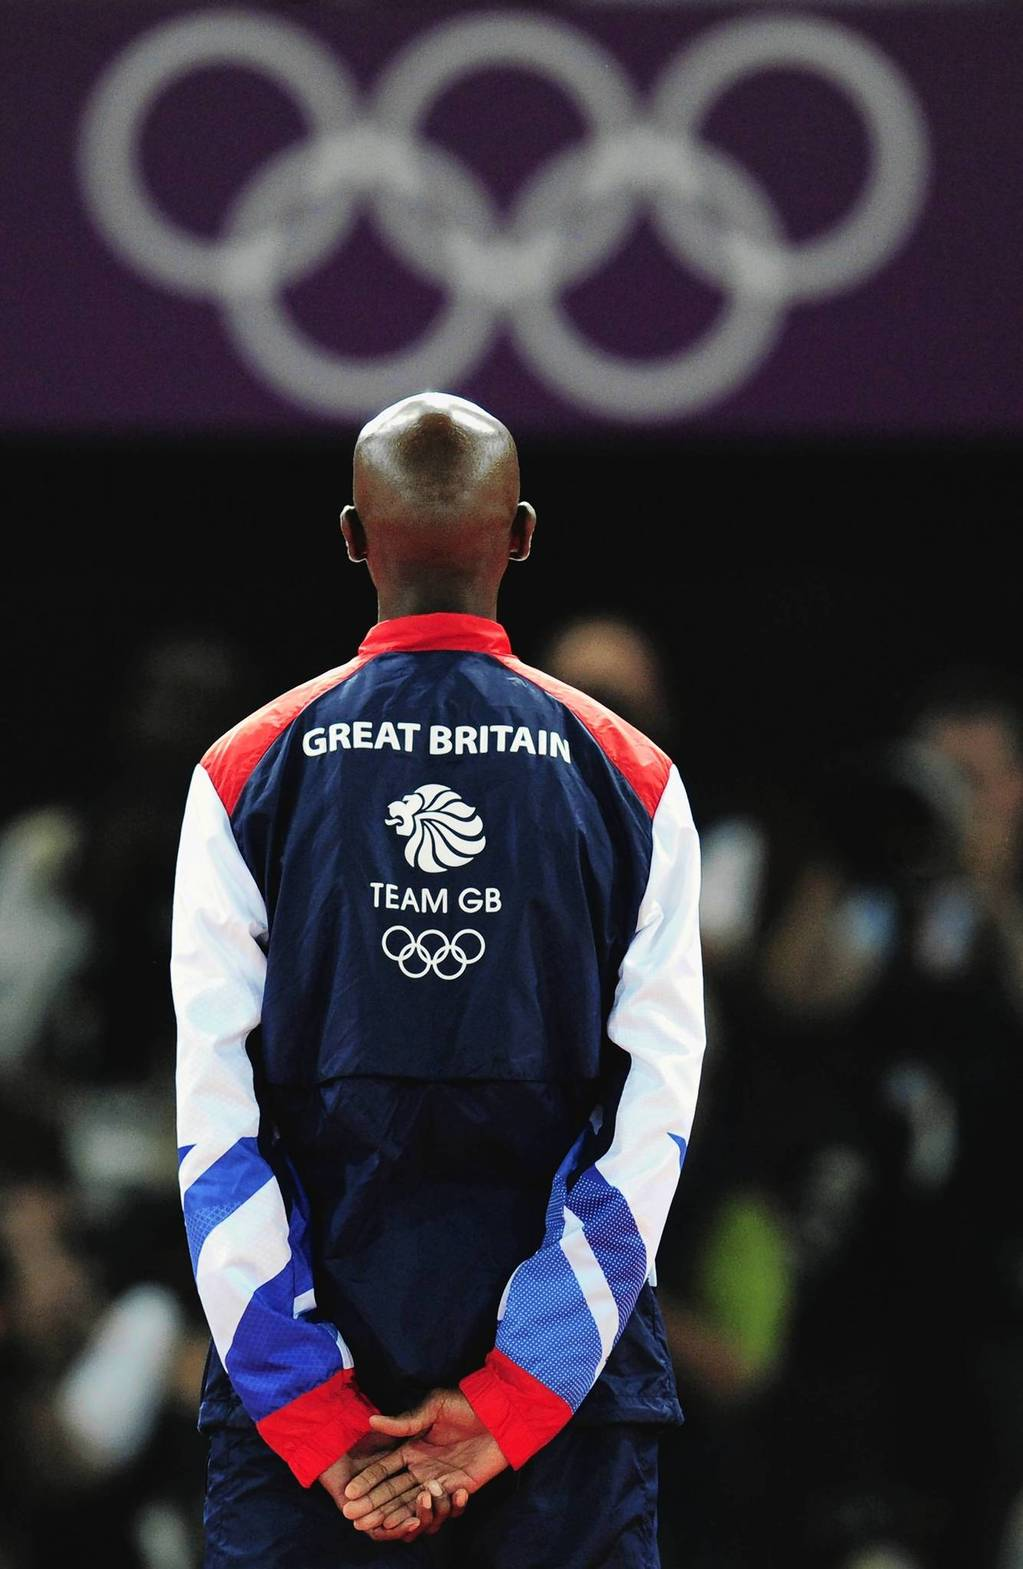 Gold medalist Mohamed Farah of Britain poses on the podium during the medal ceremony for the Men's 5000m.